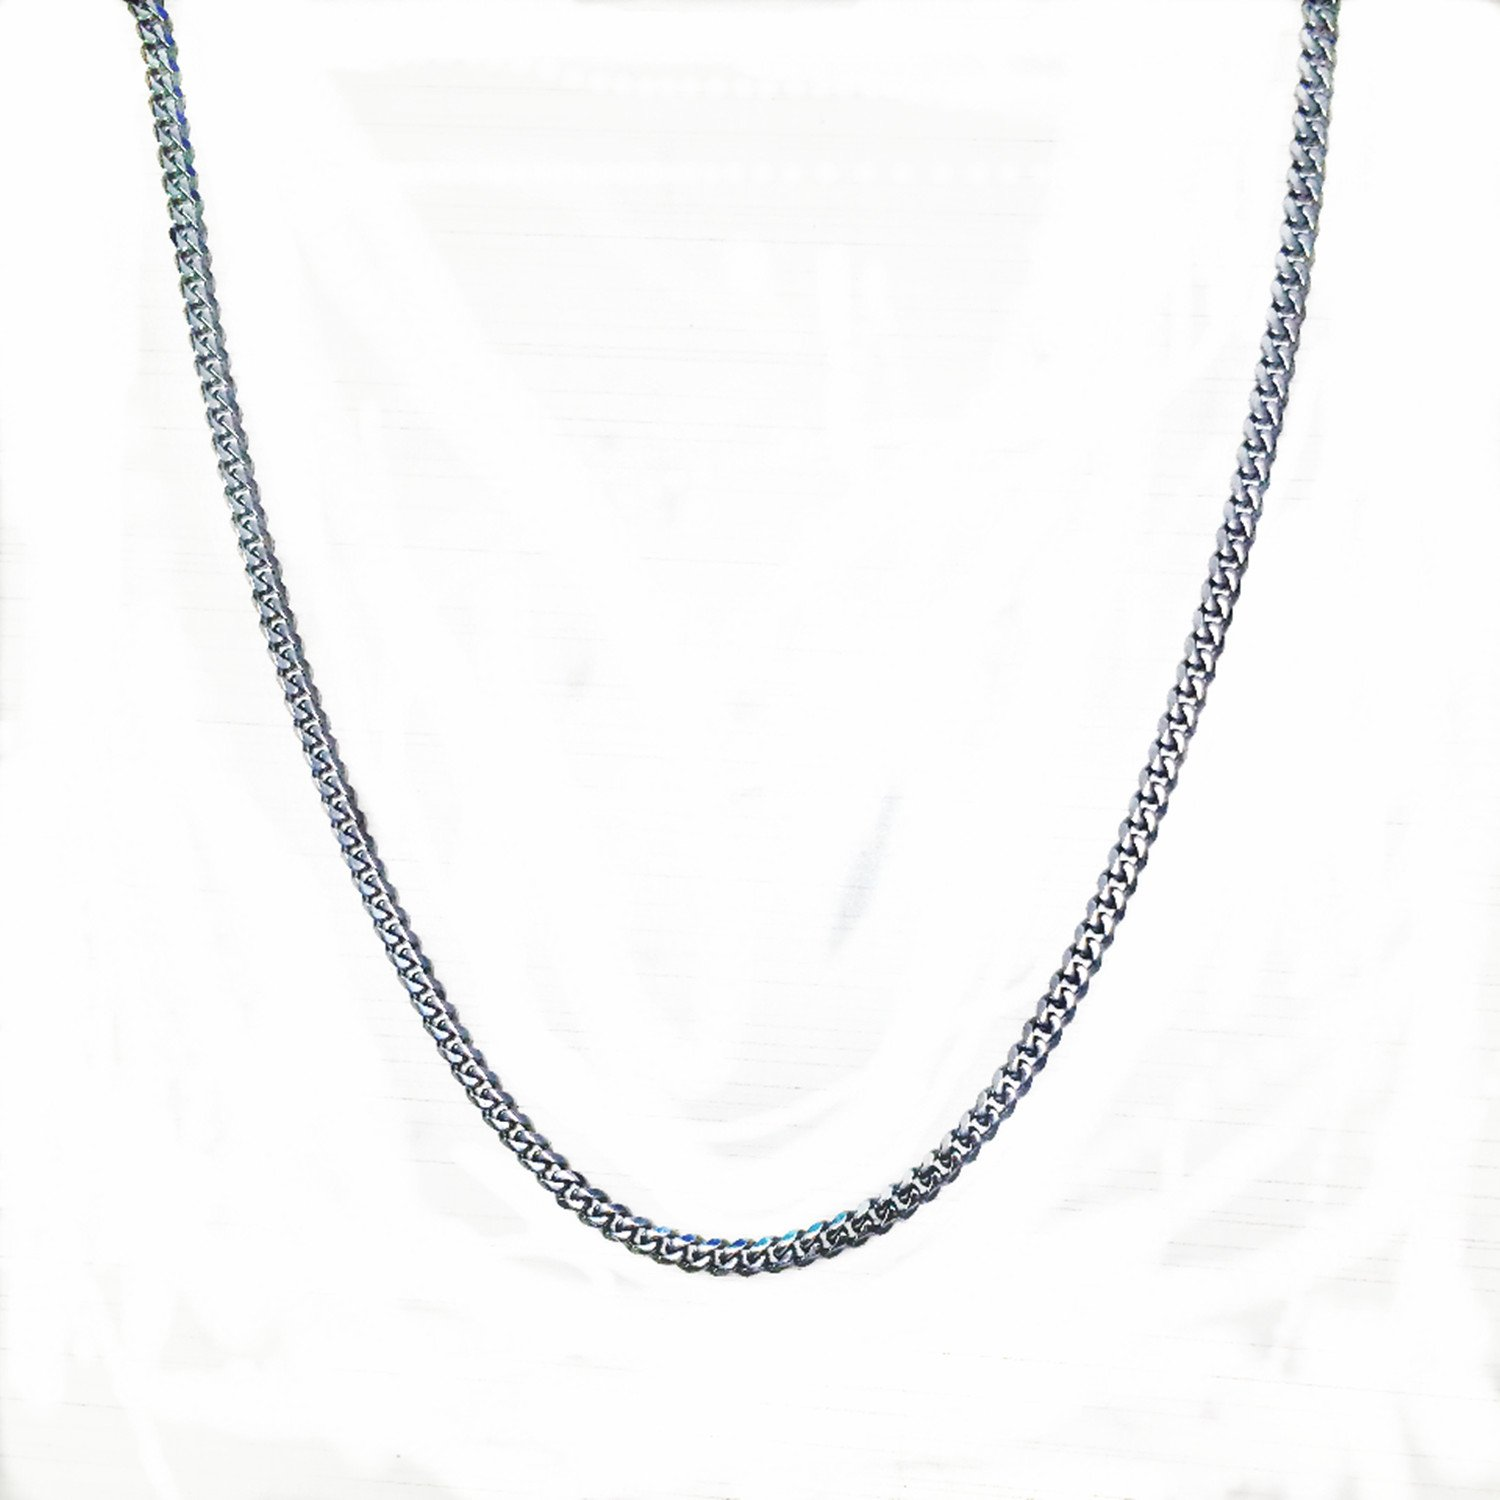 5mm Width;10-100m length;Women Men Curb Chain Silver Tone Stainless Steel Wholesale Necklace (100)